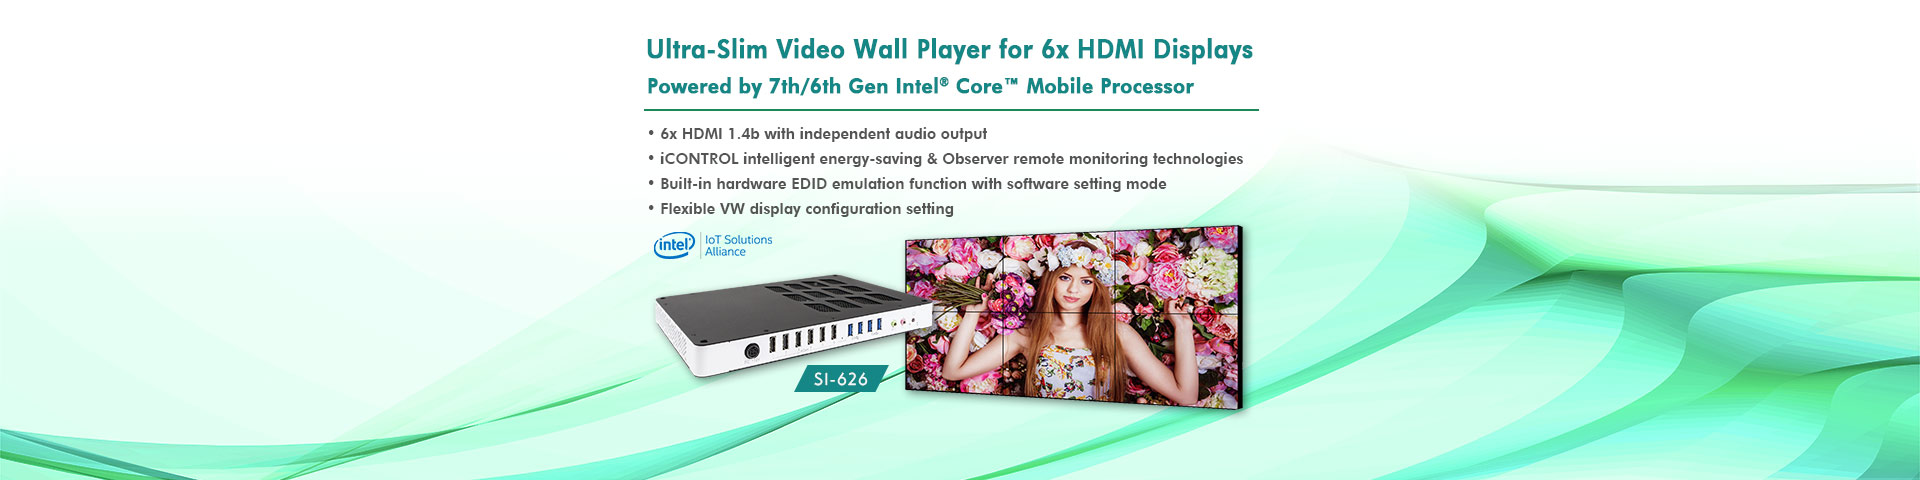 Ultra-Slim SI-626 Video Wall Player for Six High-Definition HDMI Displays